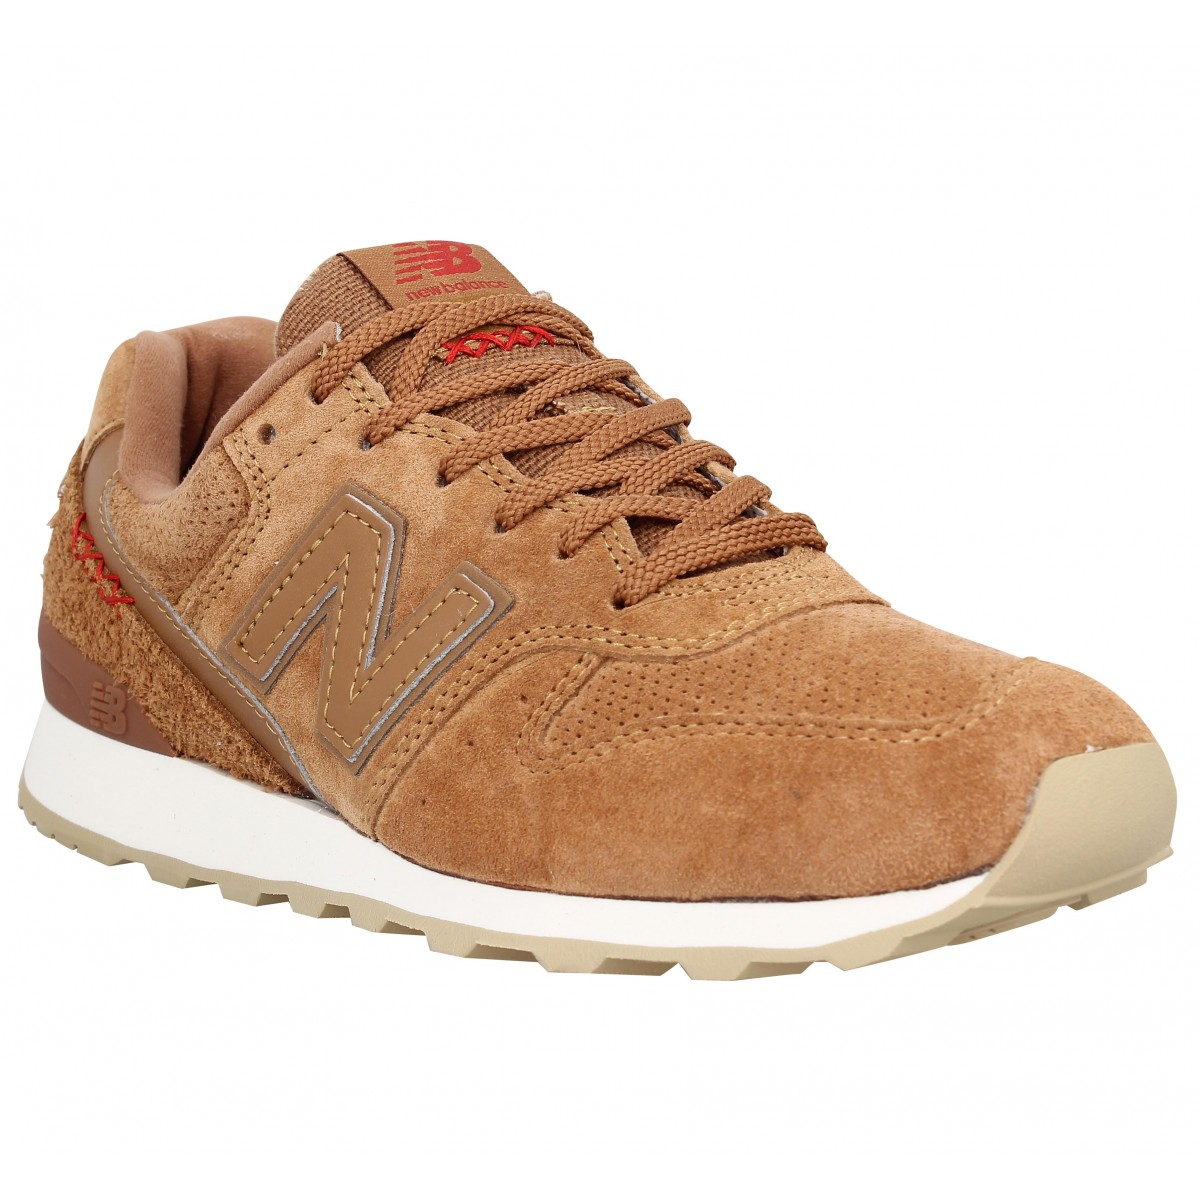 nb 996 enfant marron